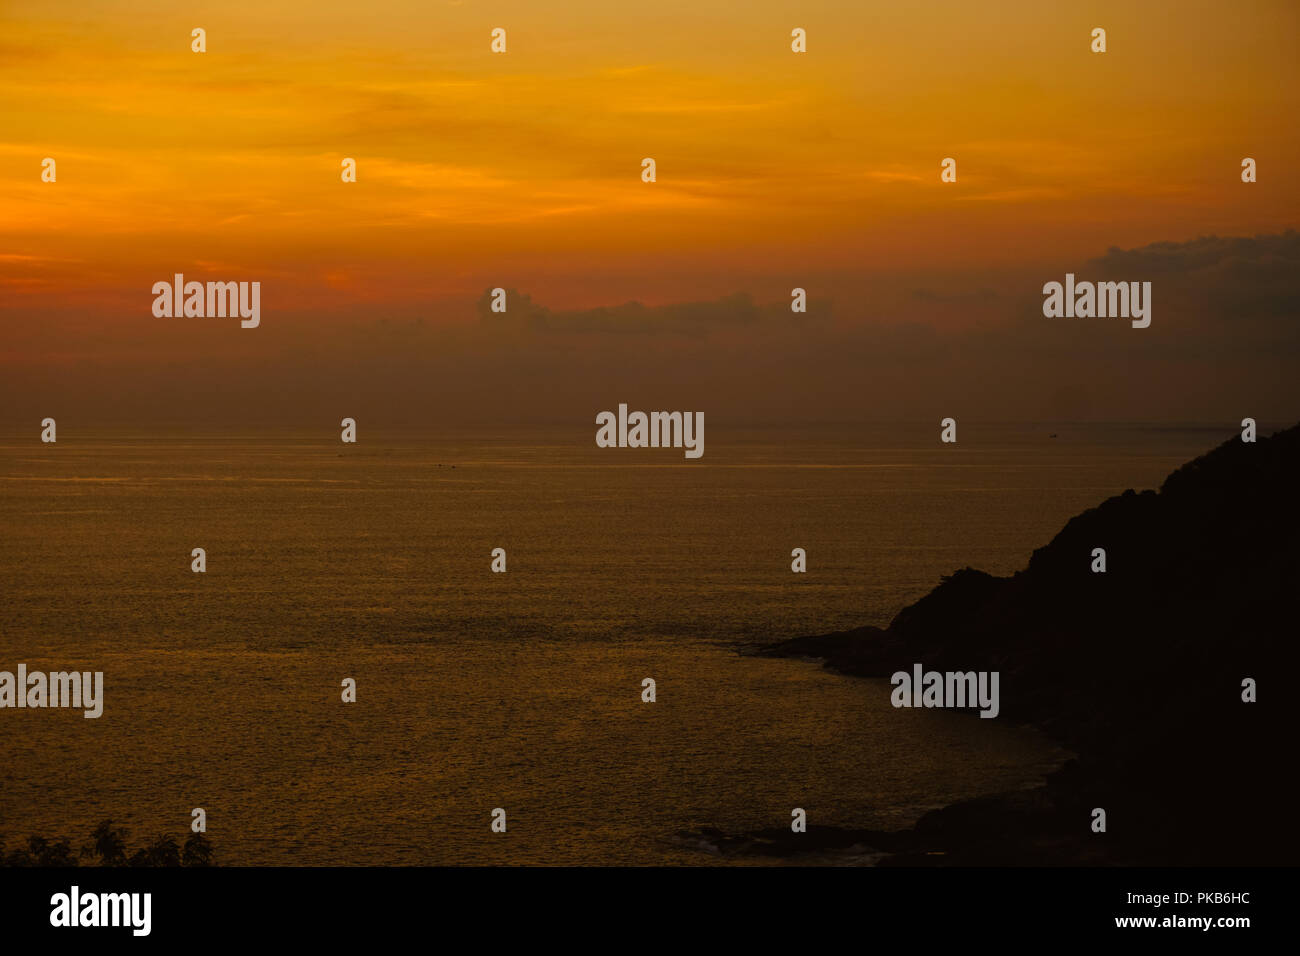 Amazing orange sky, calm sunset skyscape and sea. - Stock Image